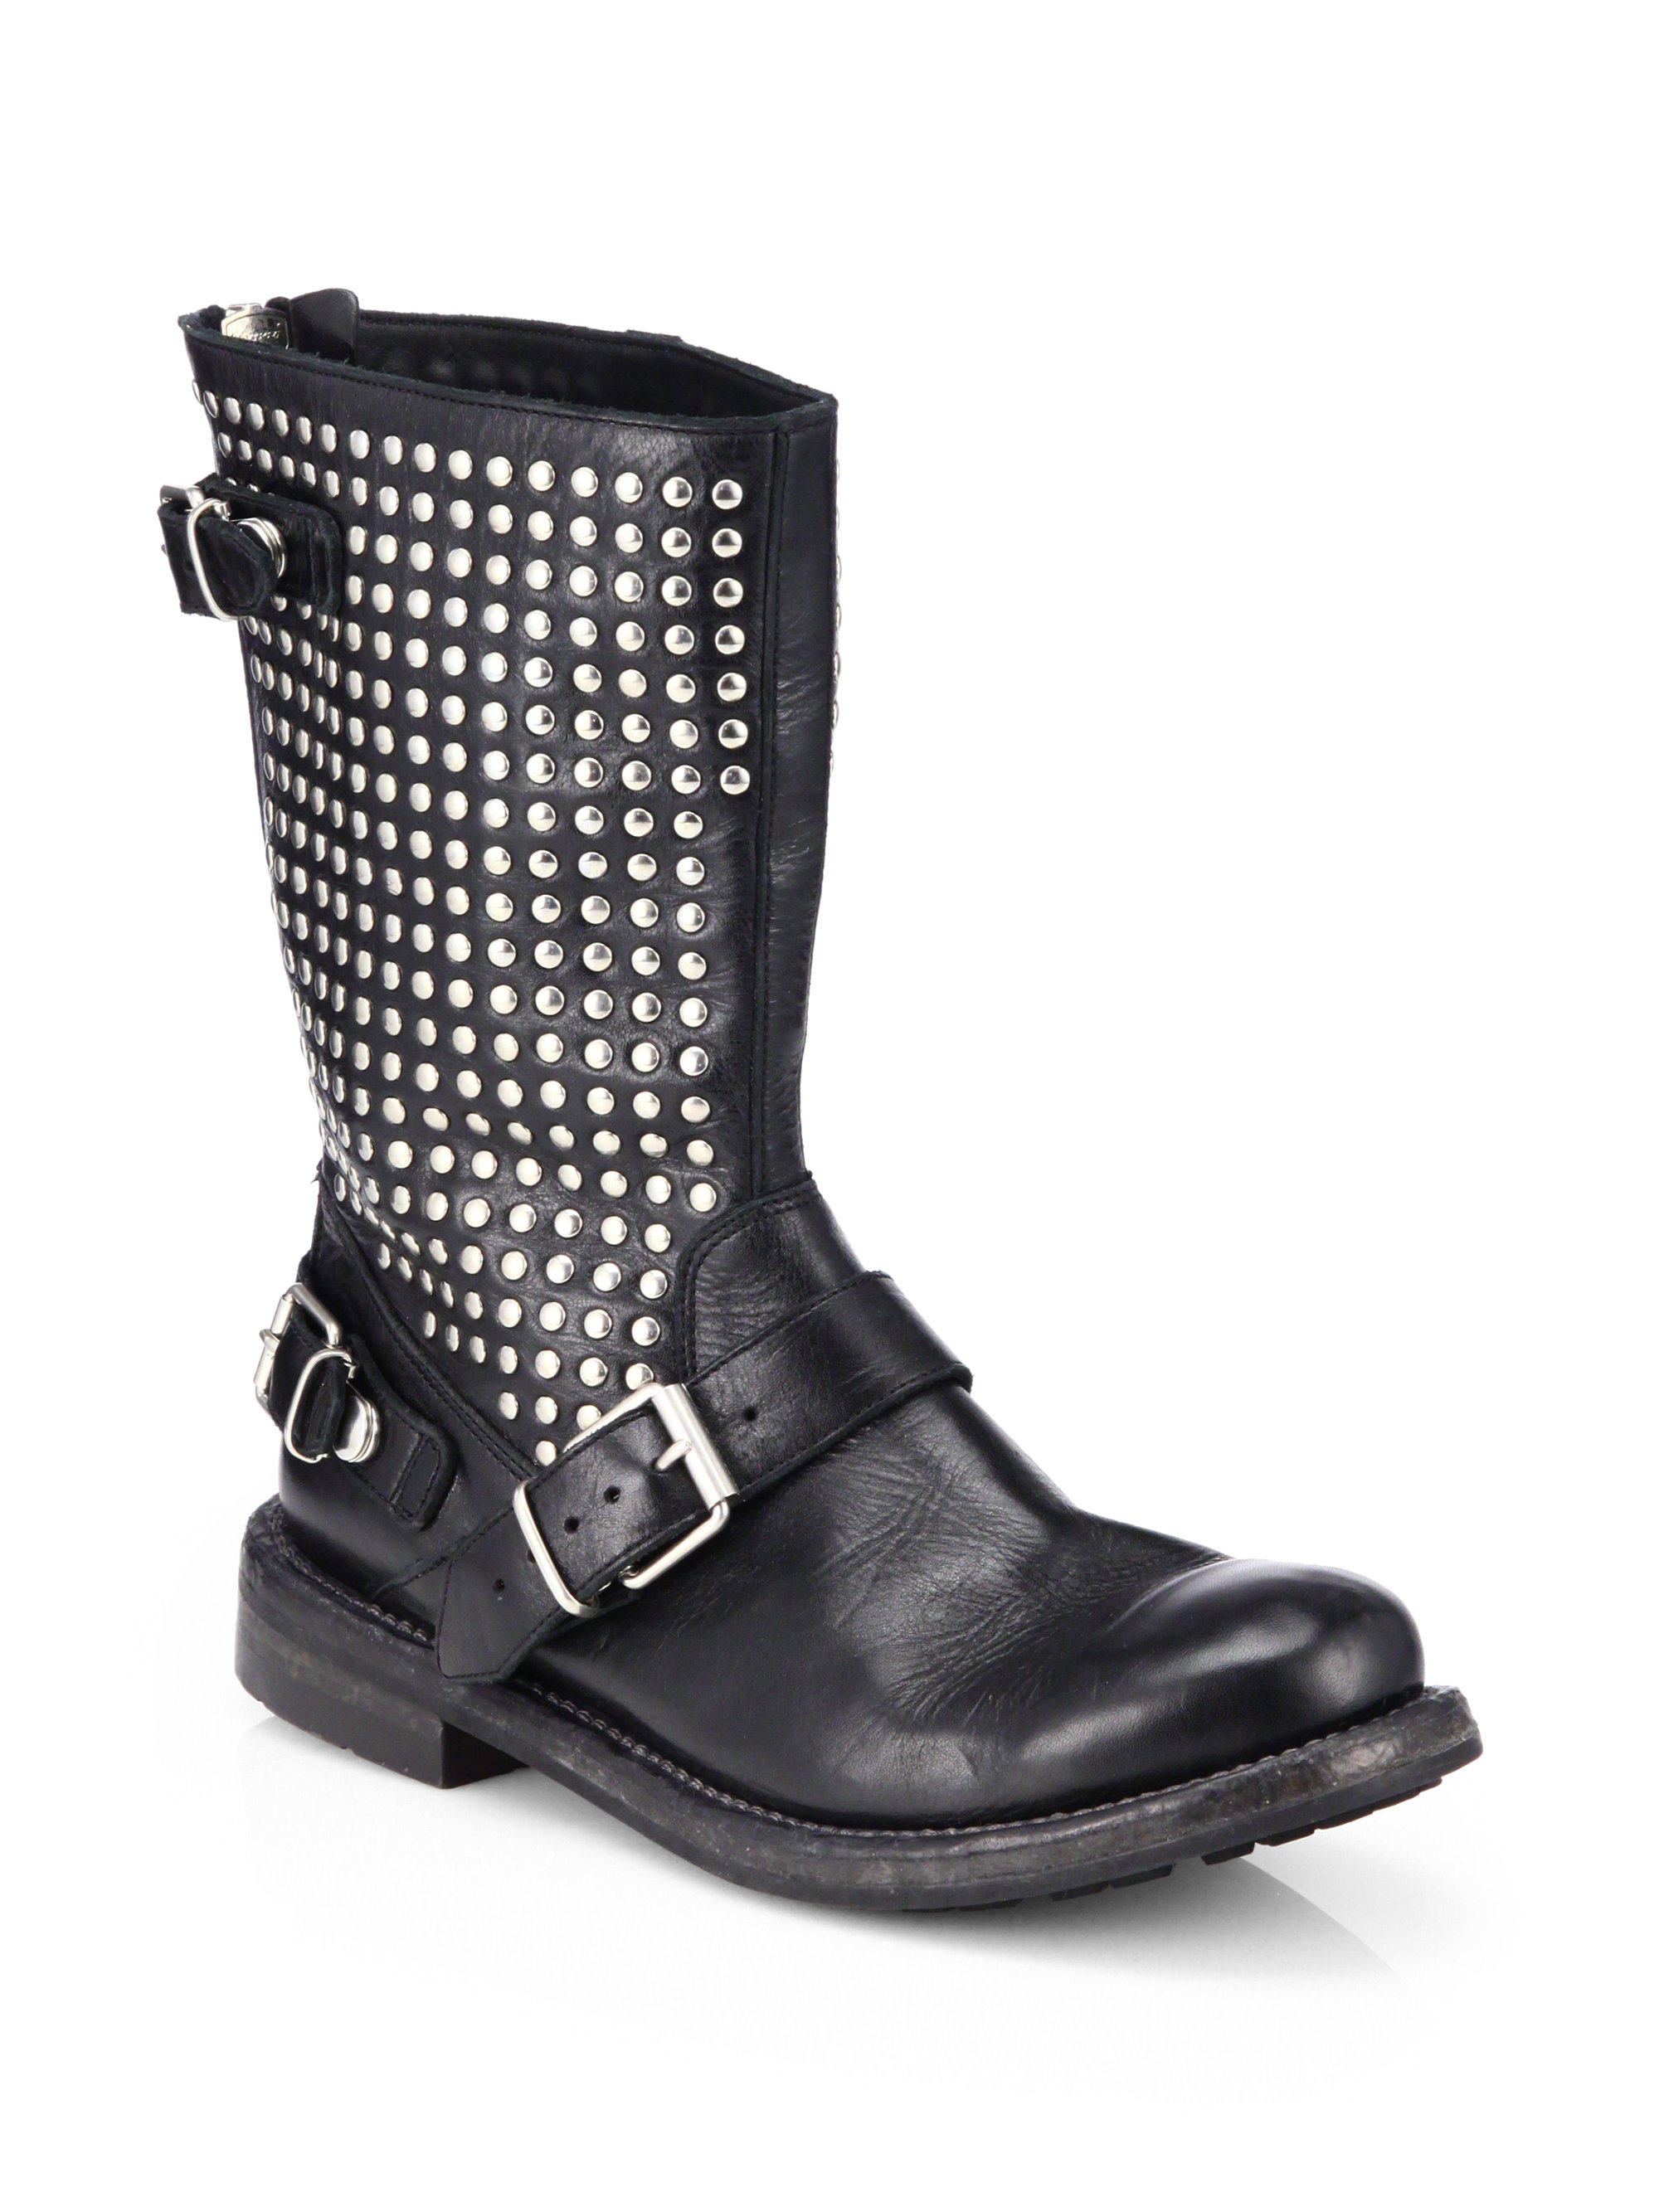 burberry athol studded leather moto boots in black lyst